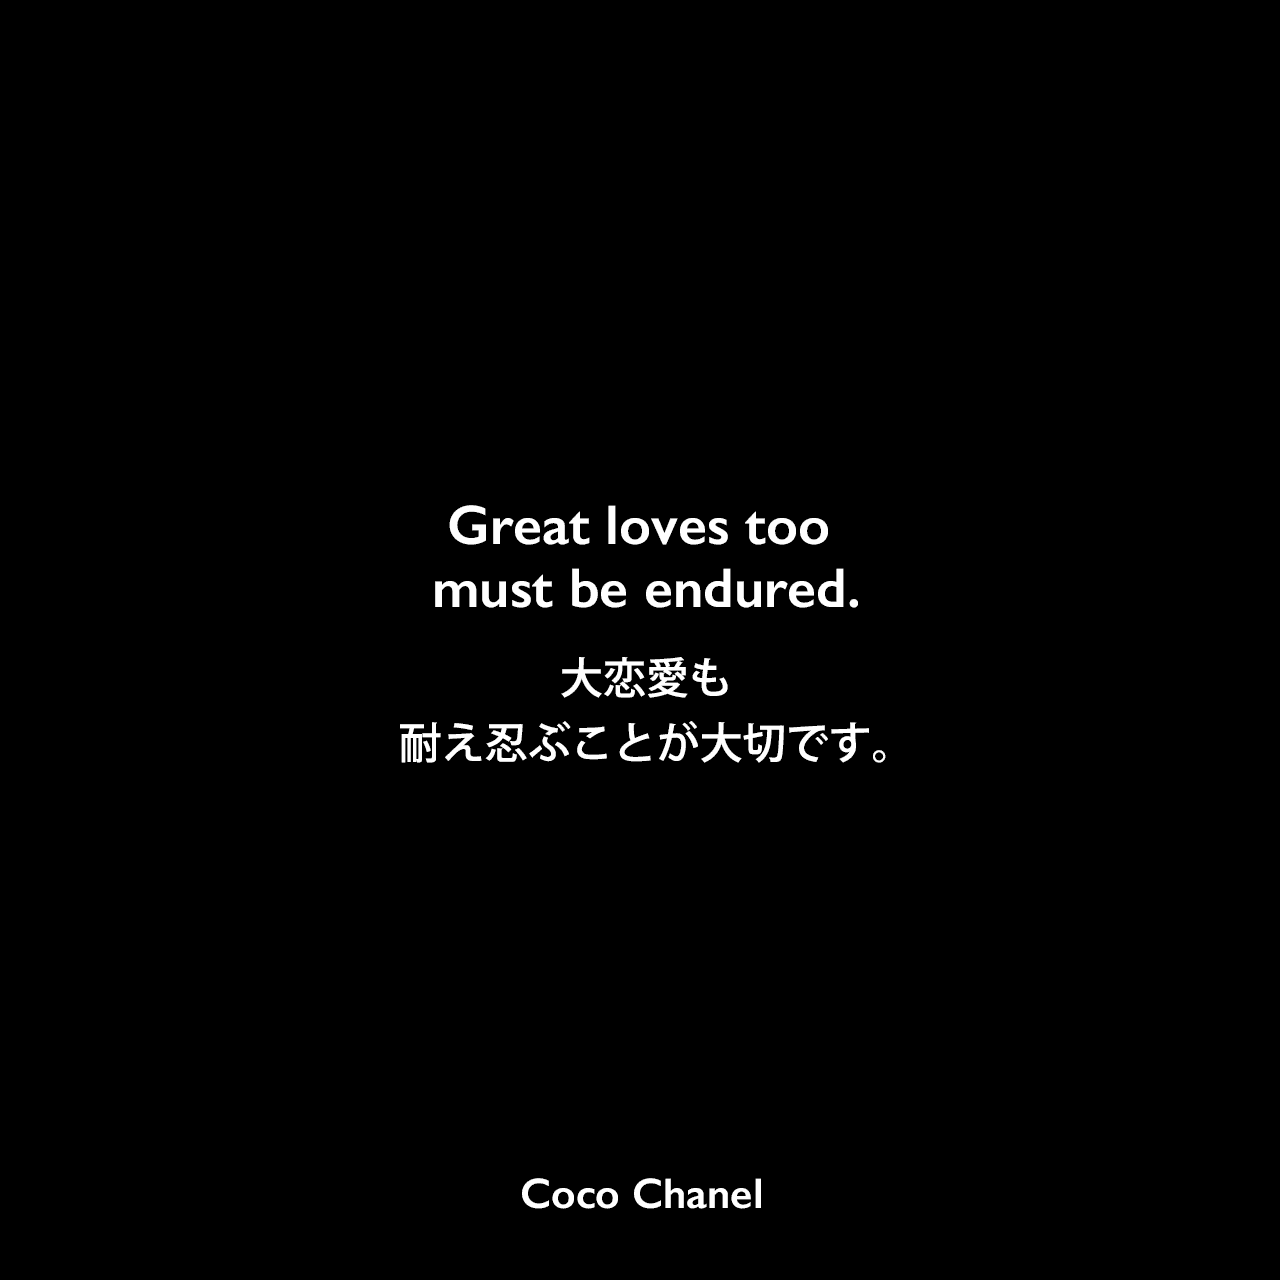 Great loves too must be endured.大恋愛も、耐え忍ぶことが大切です。Coco Chanel